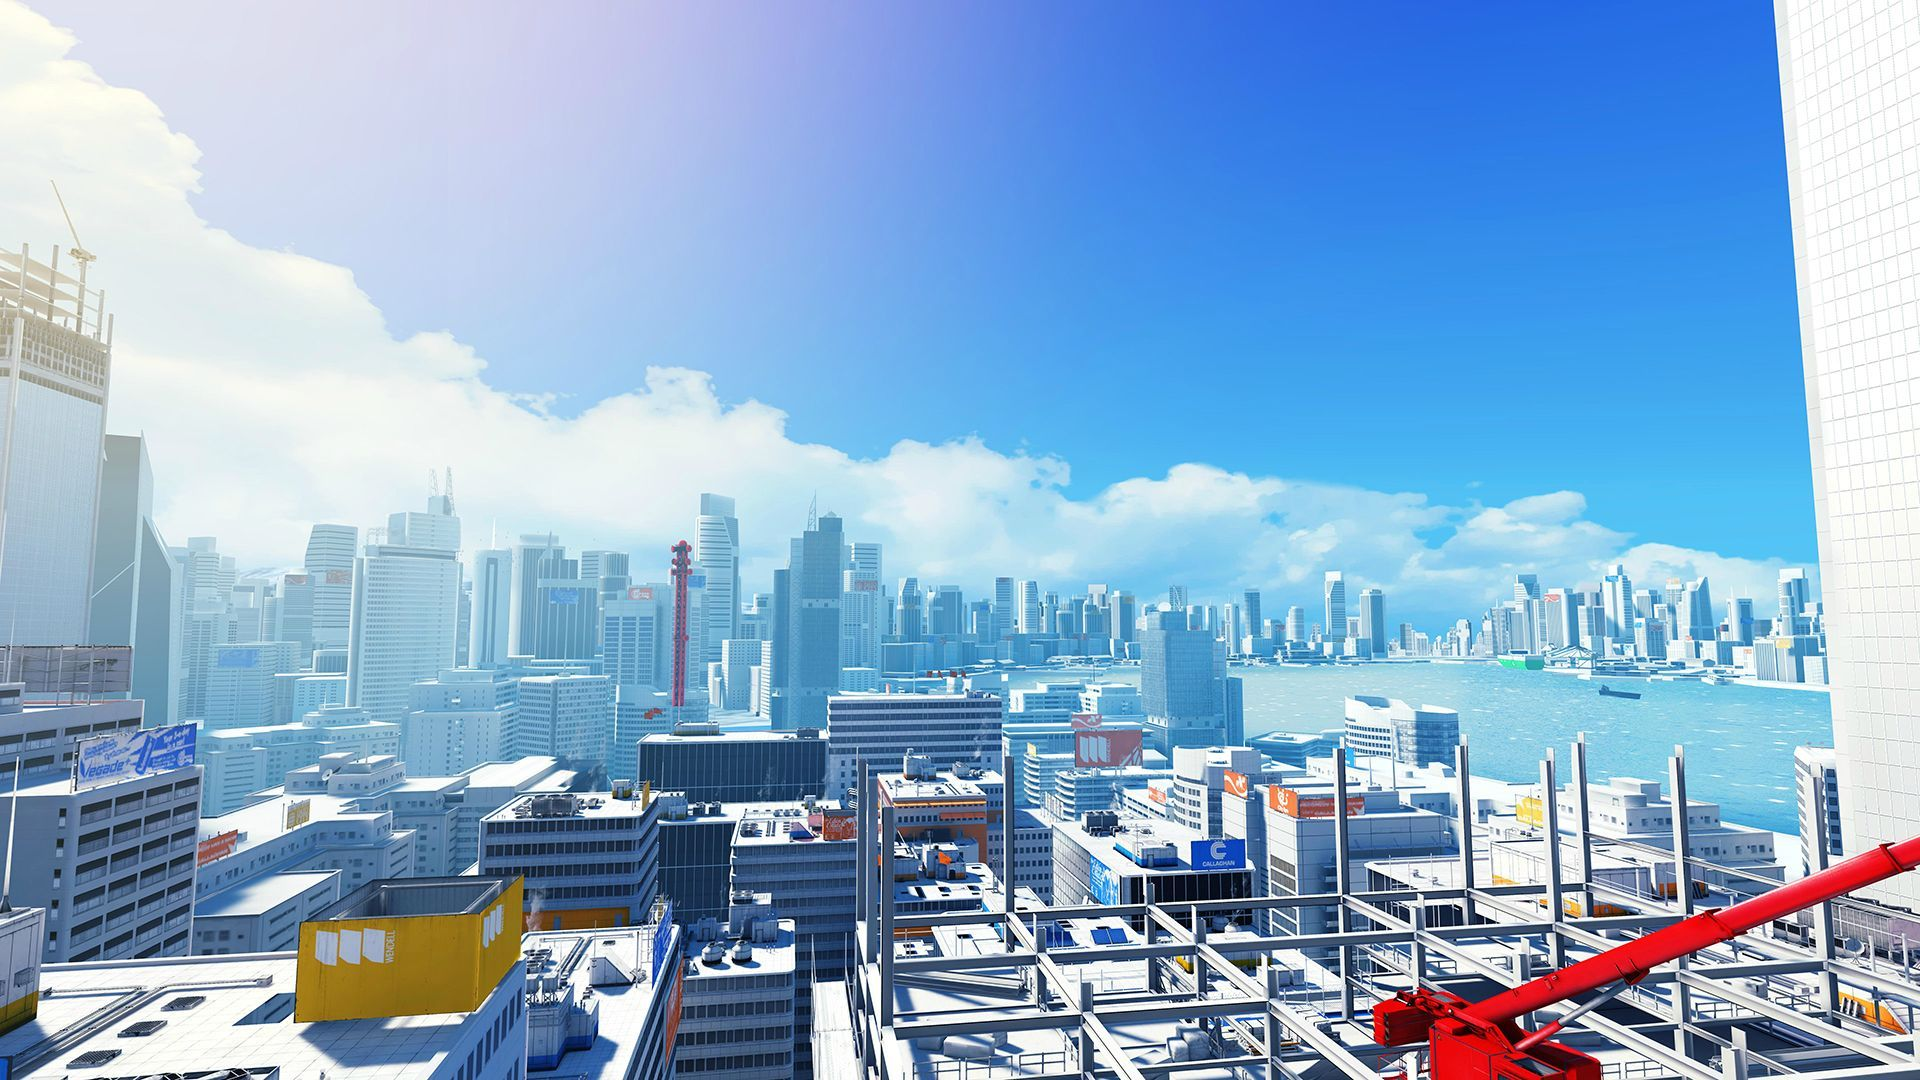 Mirror S Edge Wallpapers Top Free Mirror S Edge Backgrounds